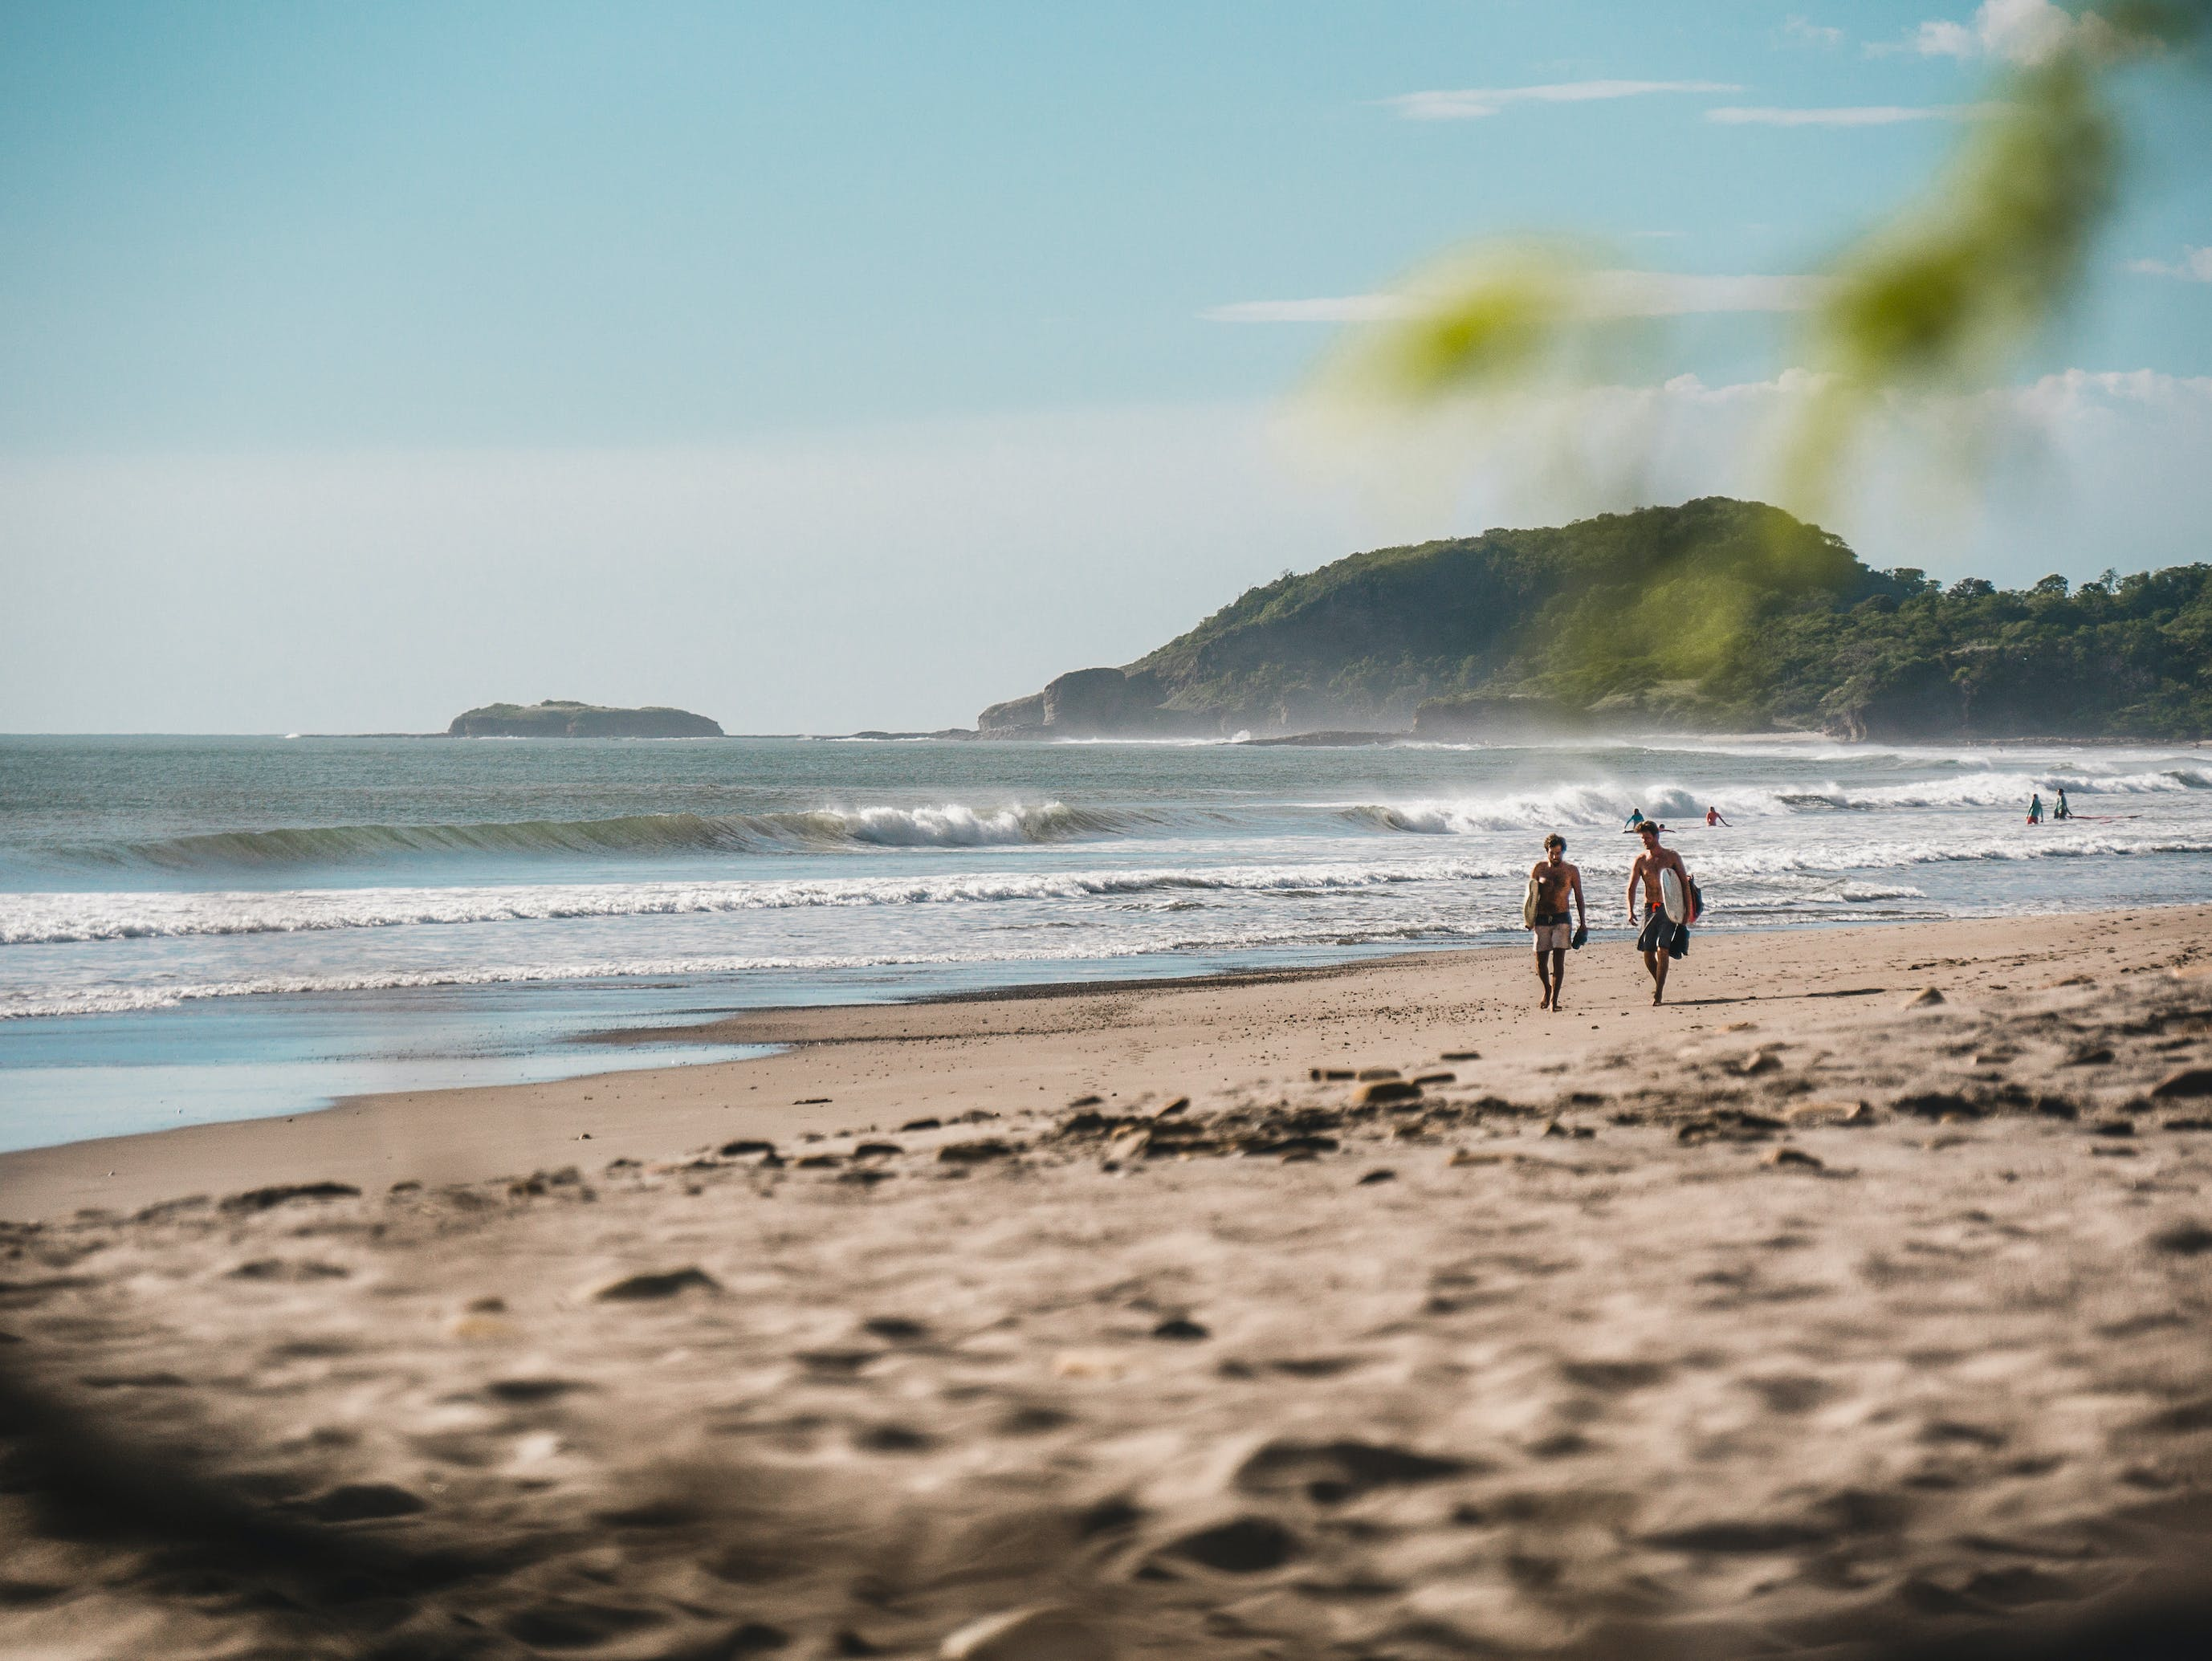 Two Person Walking on Beachside